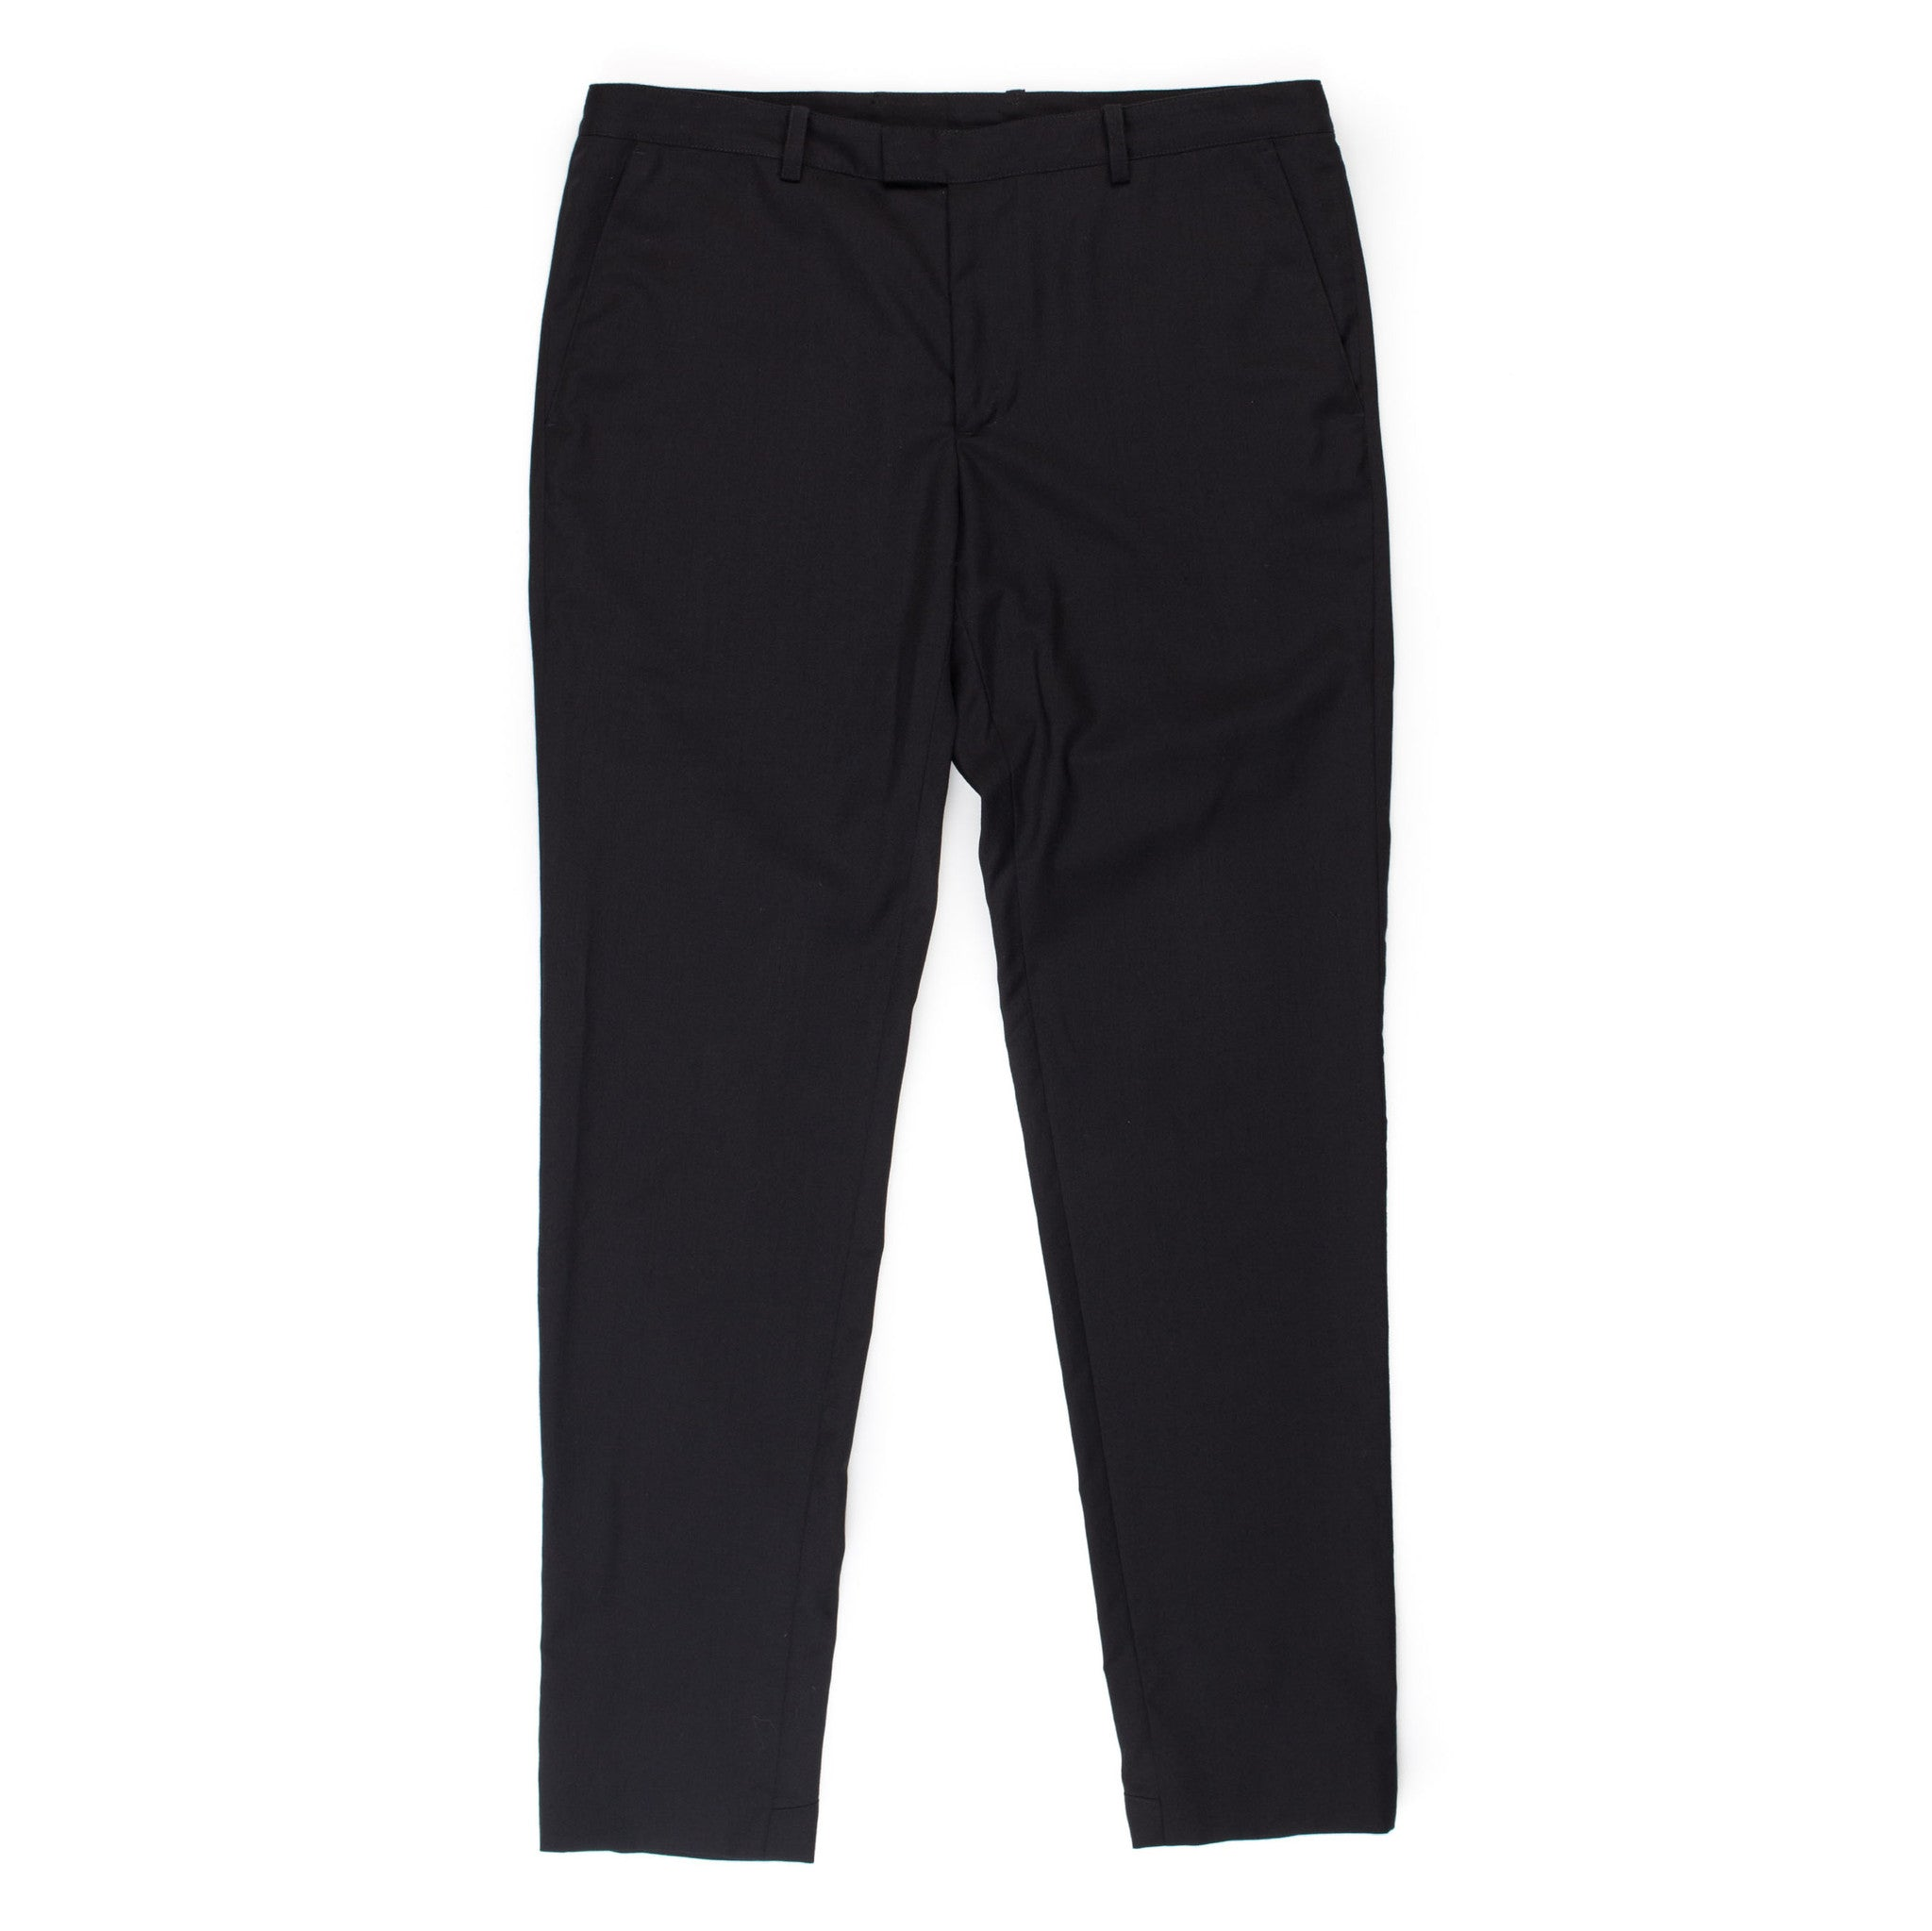 Plain Trouser (Black)